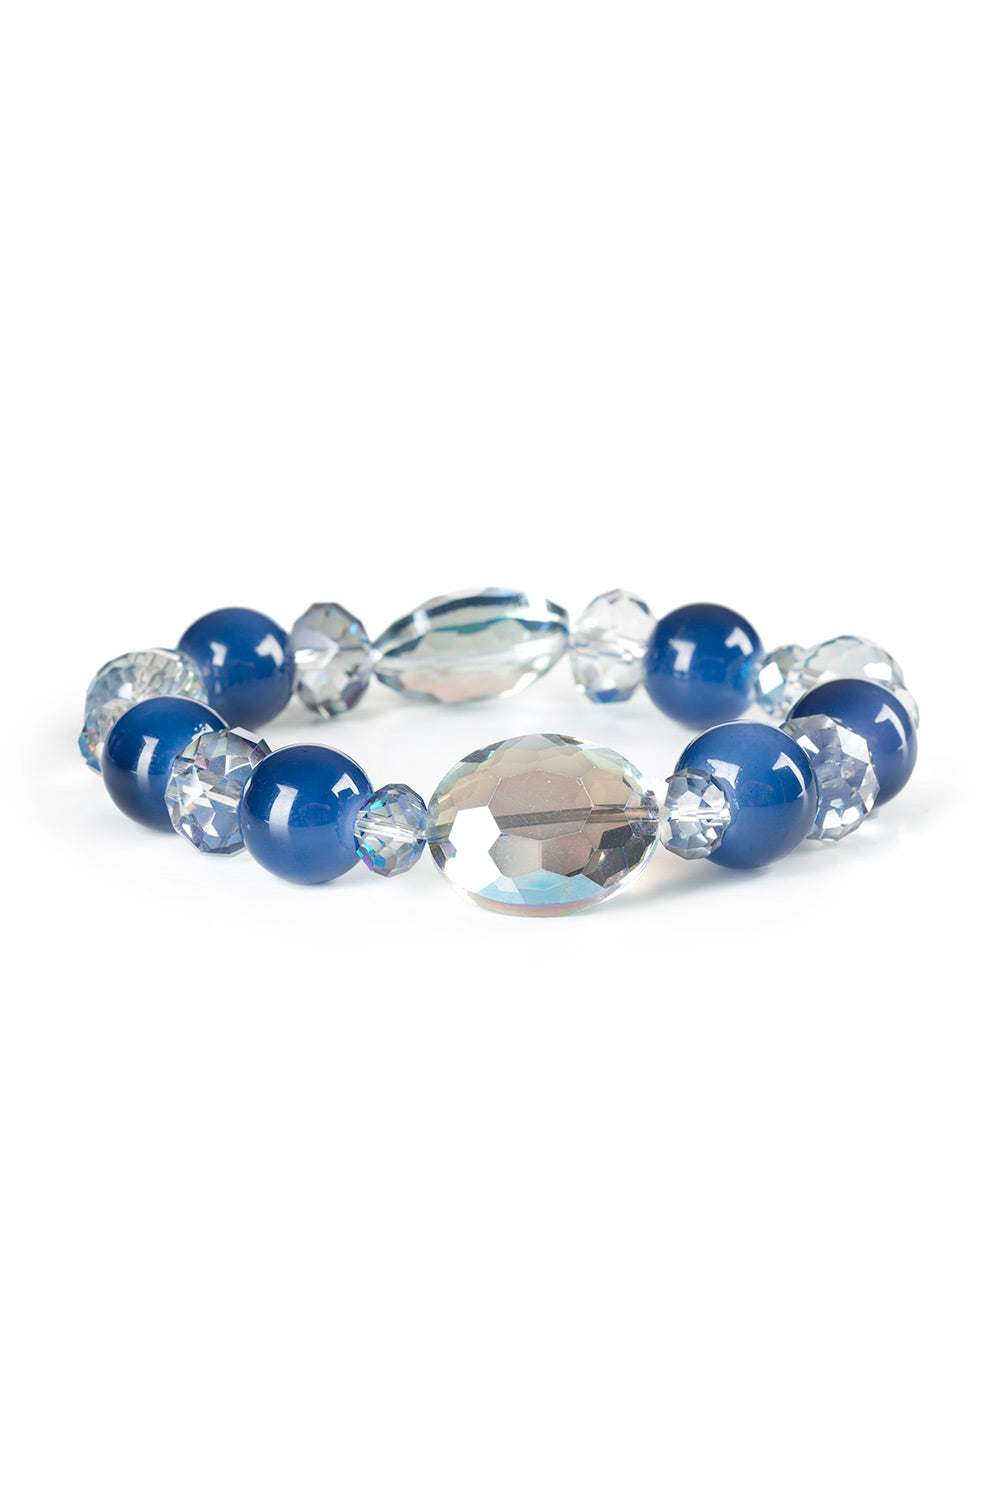 Type 2 Splendid Bracelet